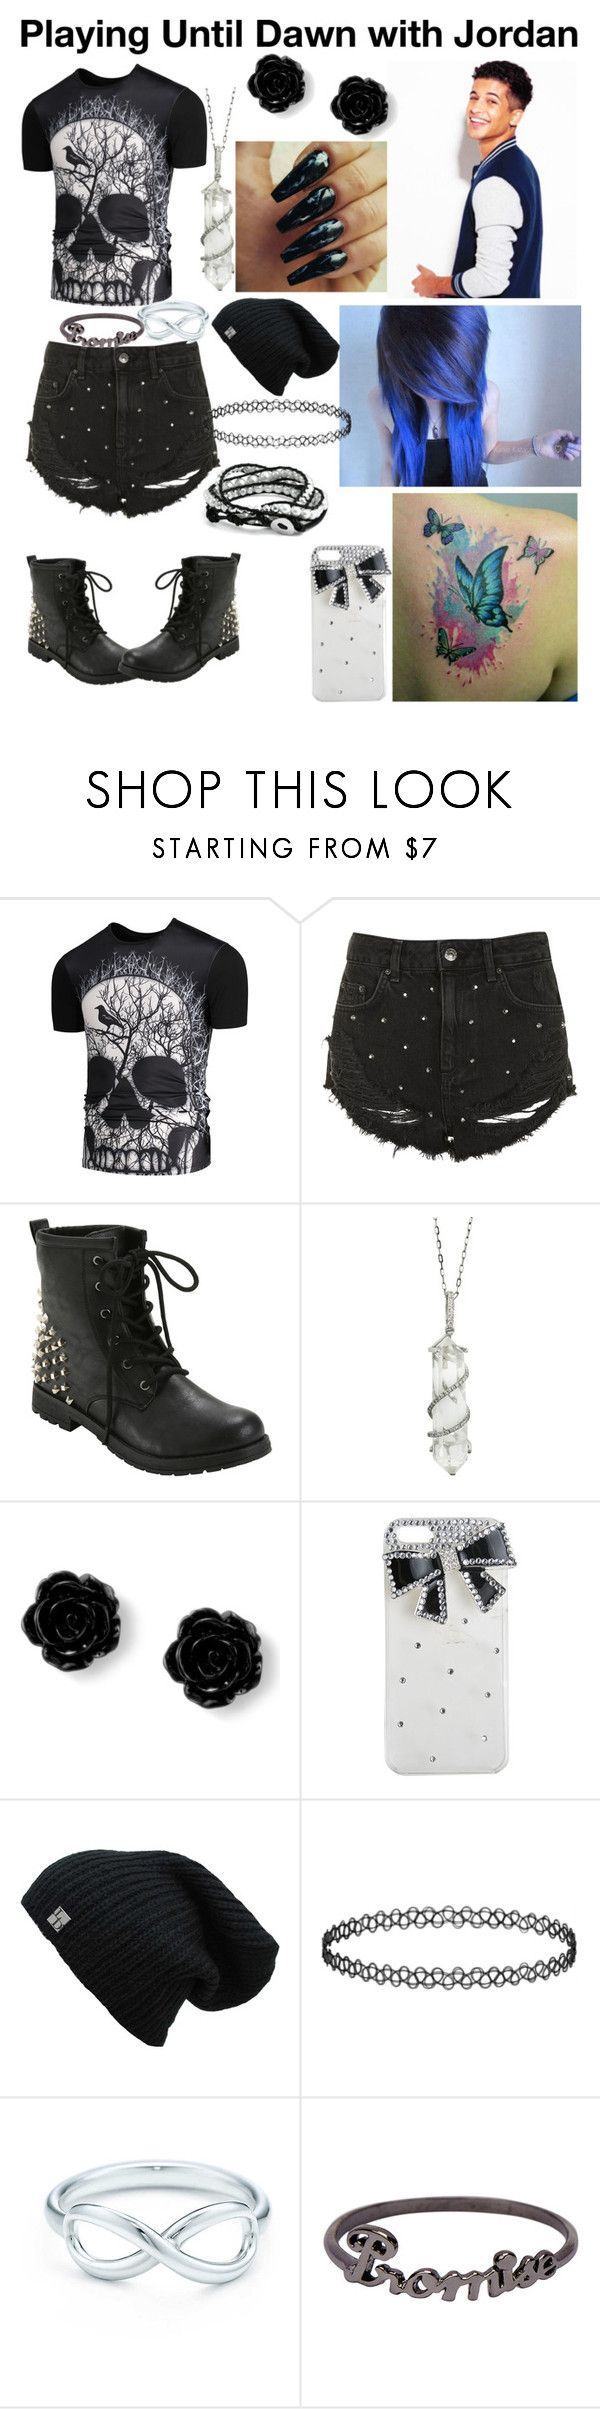 """""""Playing Until Dawn with Jordan Fisher"""" by puppylover32203 on Polyvore featuring Topshop, Hot Topic, Sharon Khazzam, Wet Seal, Tiffany & Co., Icepinkim and Bling Jewelry"""